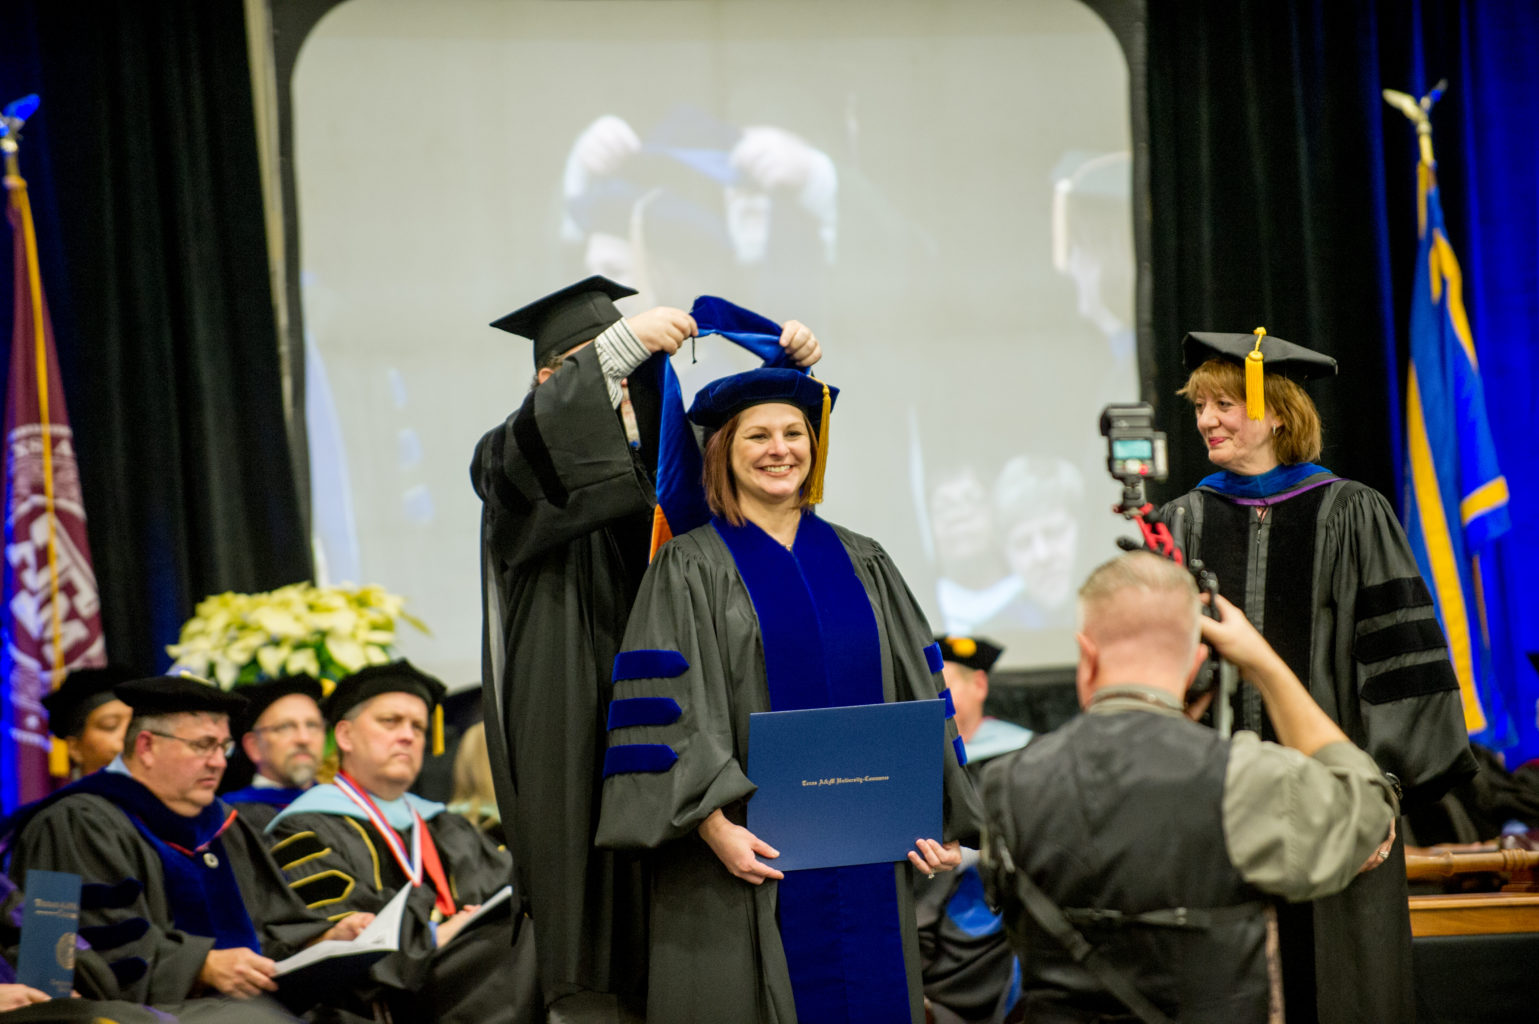 Woman receiving honors during a graduation ceremony.